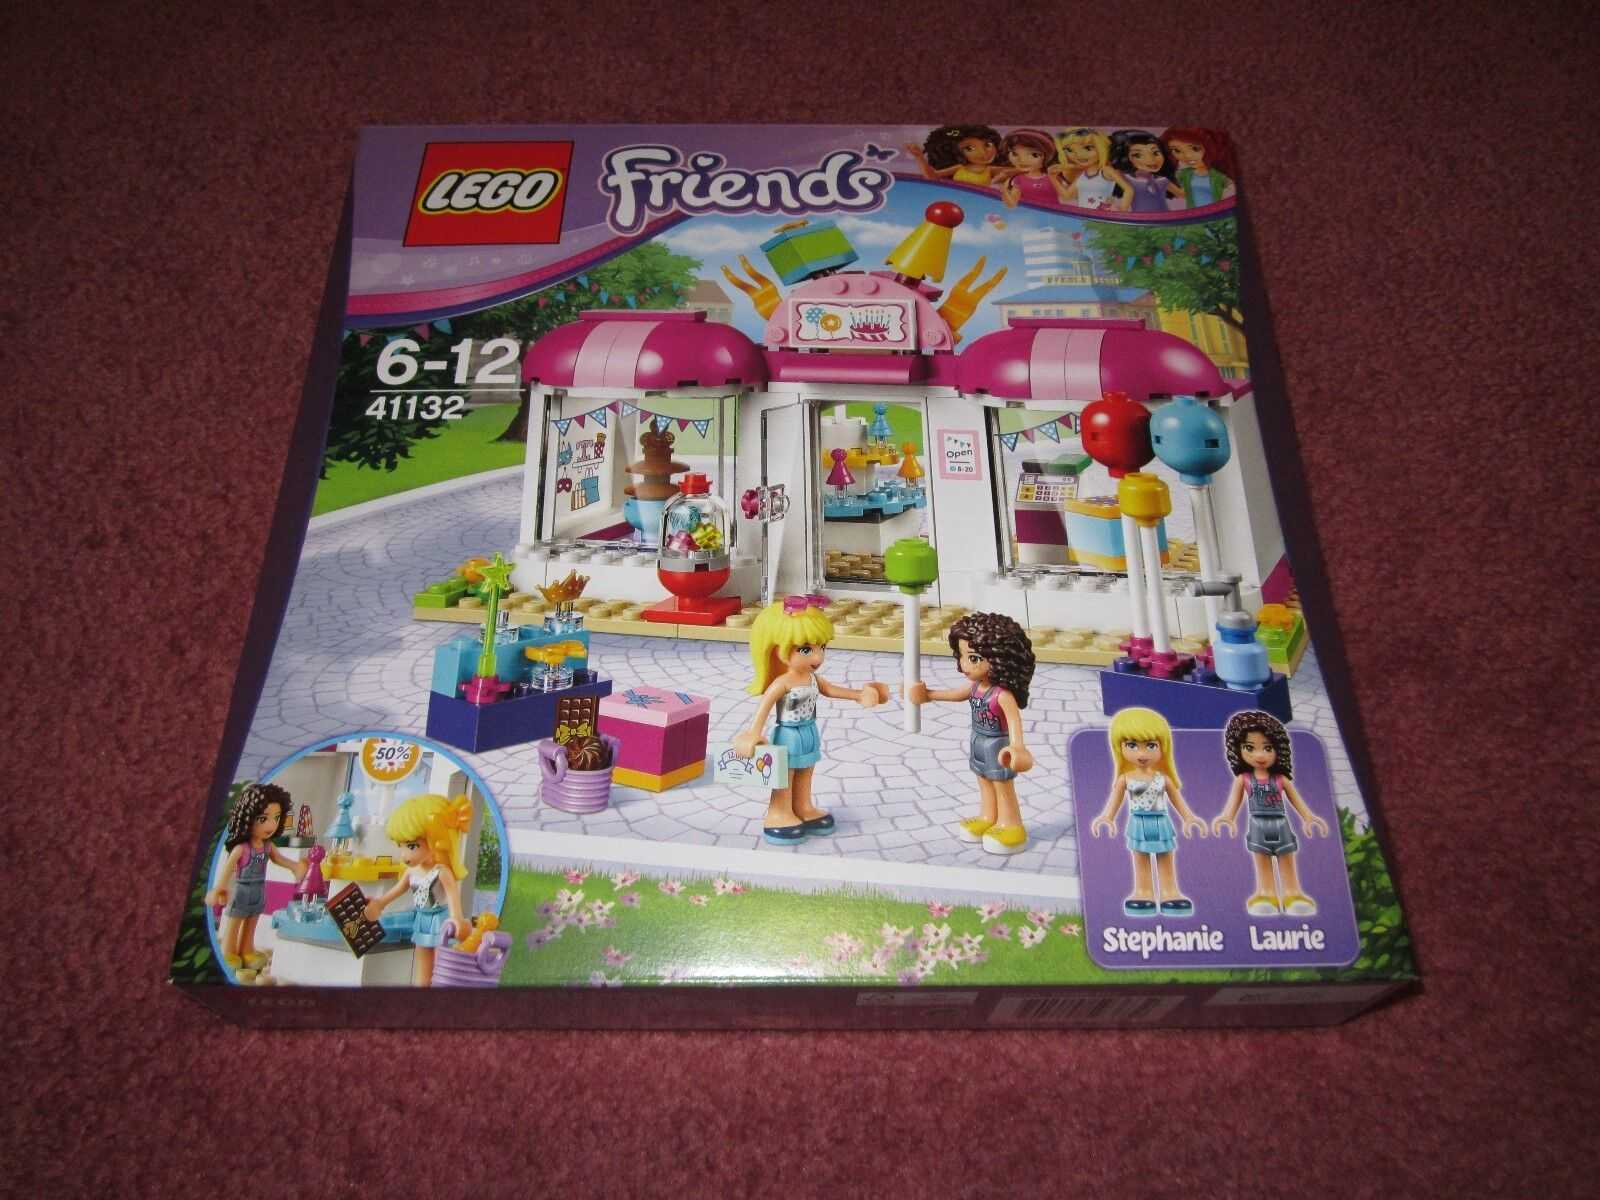 LEGO FRIENDS HEARTLAKE HEARTLAKE HEARTLAKE PARTY SHOP 41132 - NEW BOXED SEALED 707981